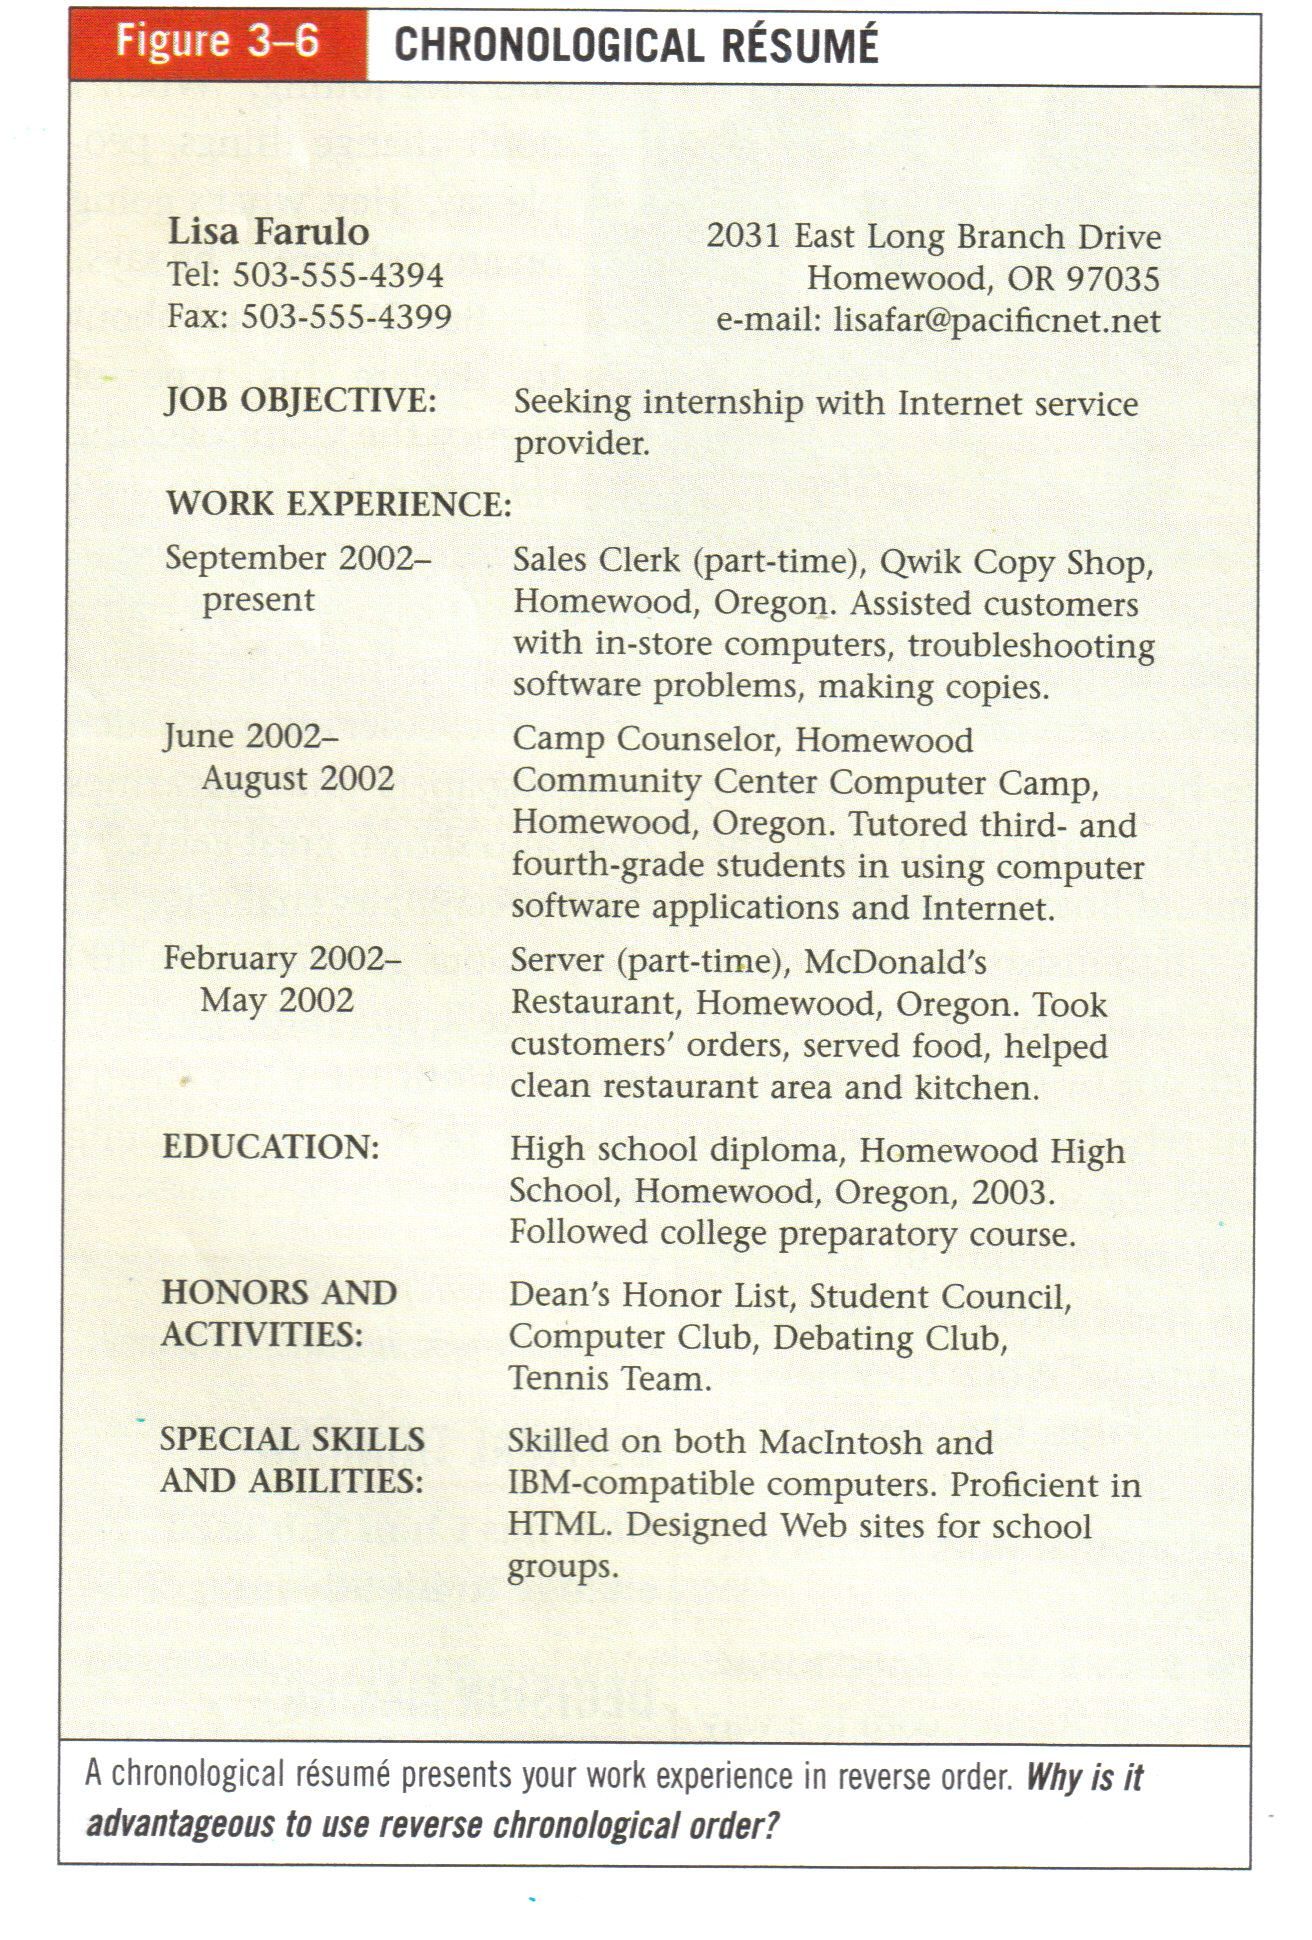 Sample Chronological Resume  Chronological Resume Definition